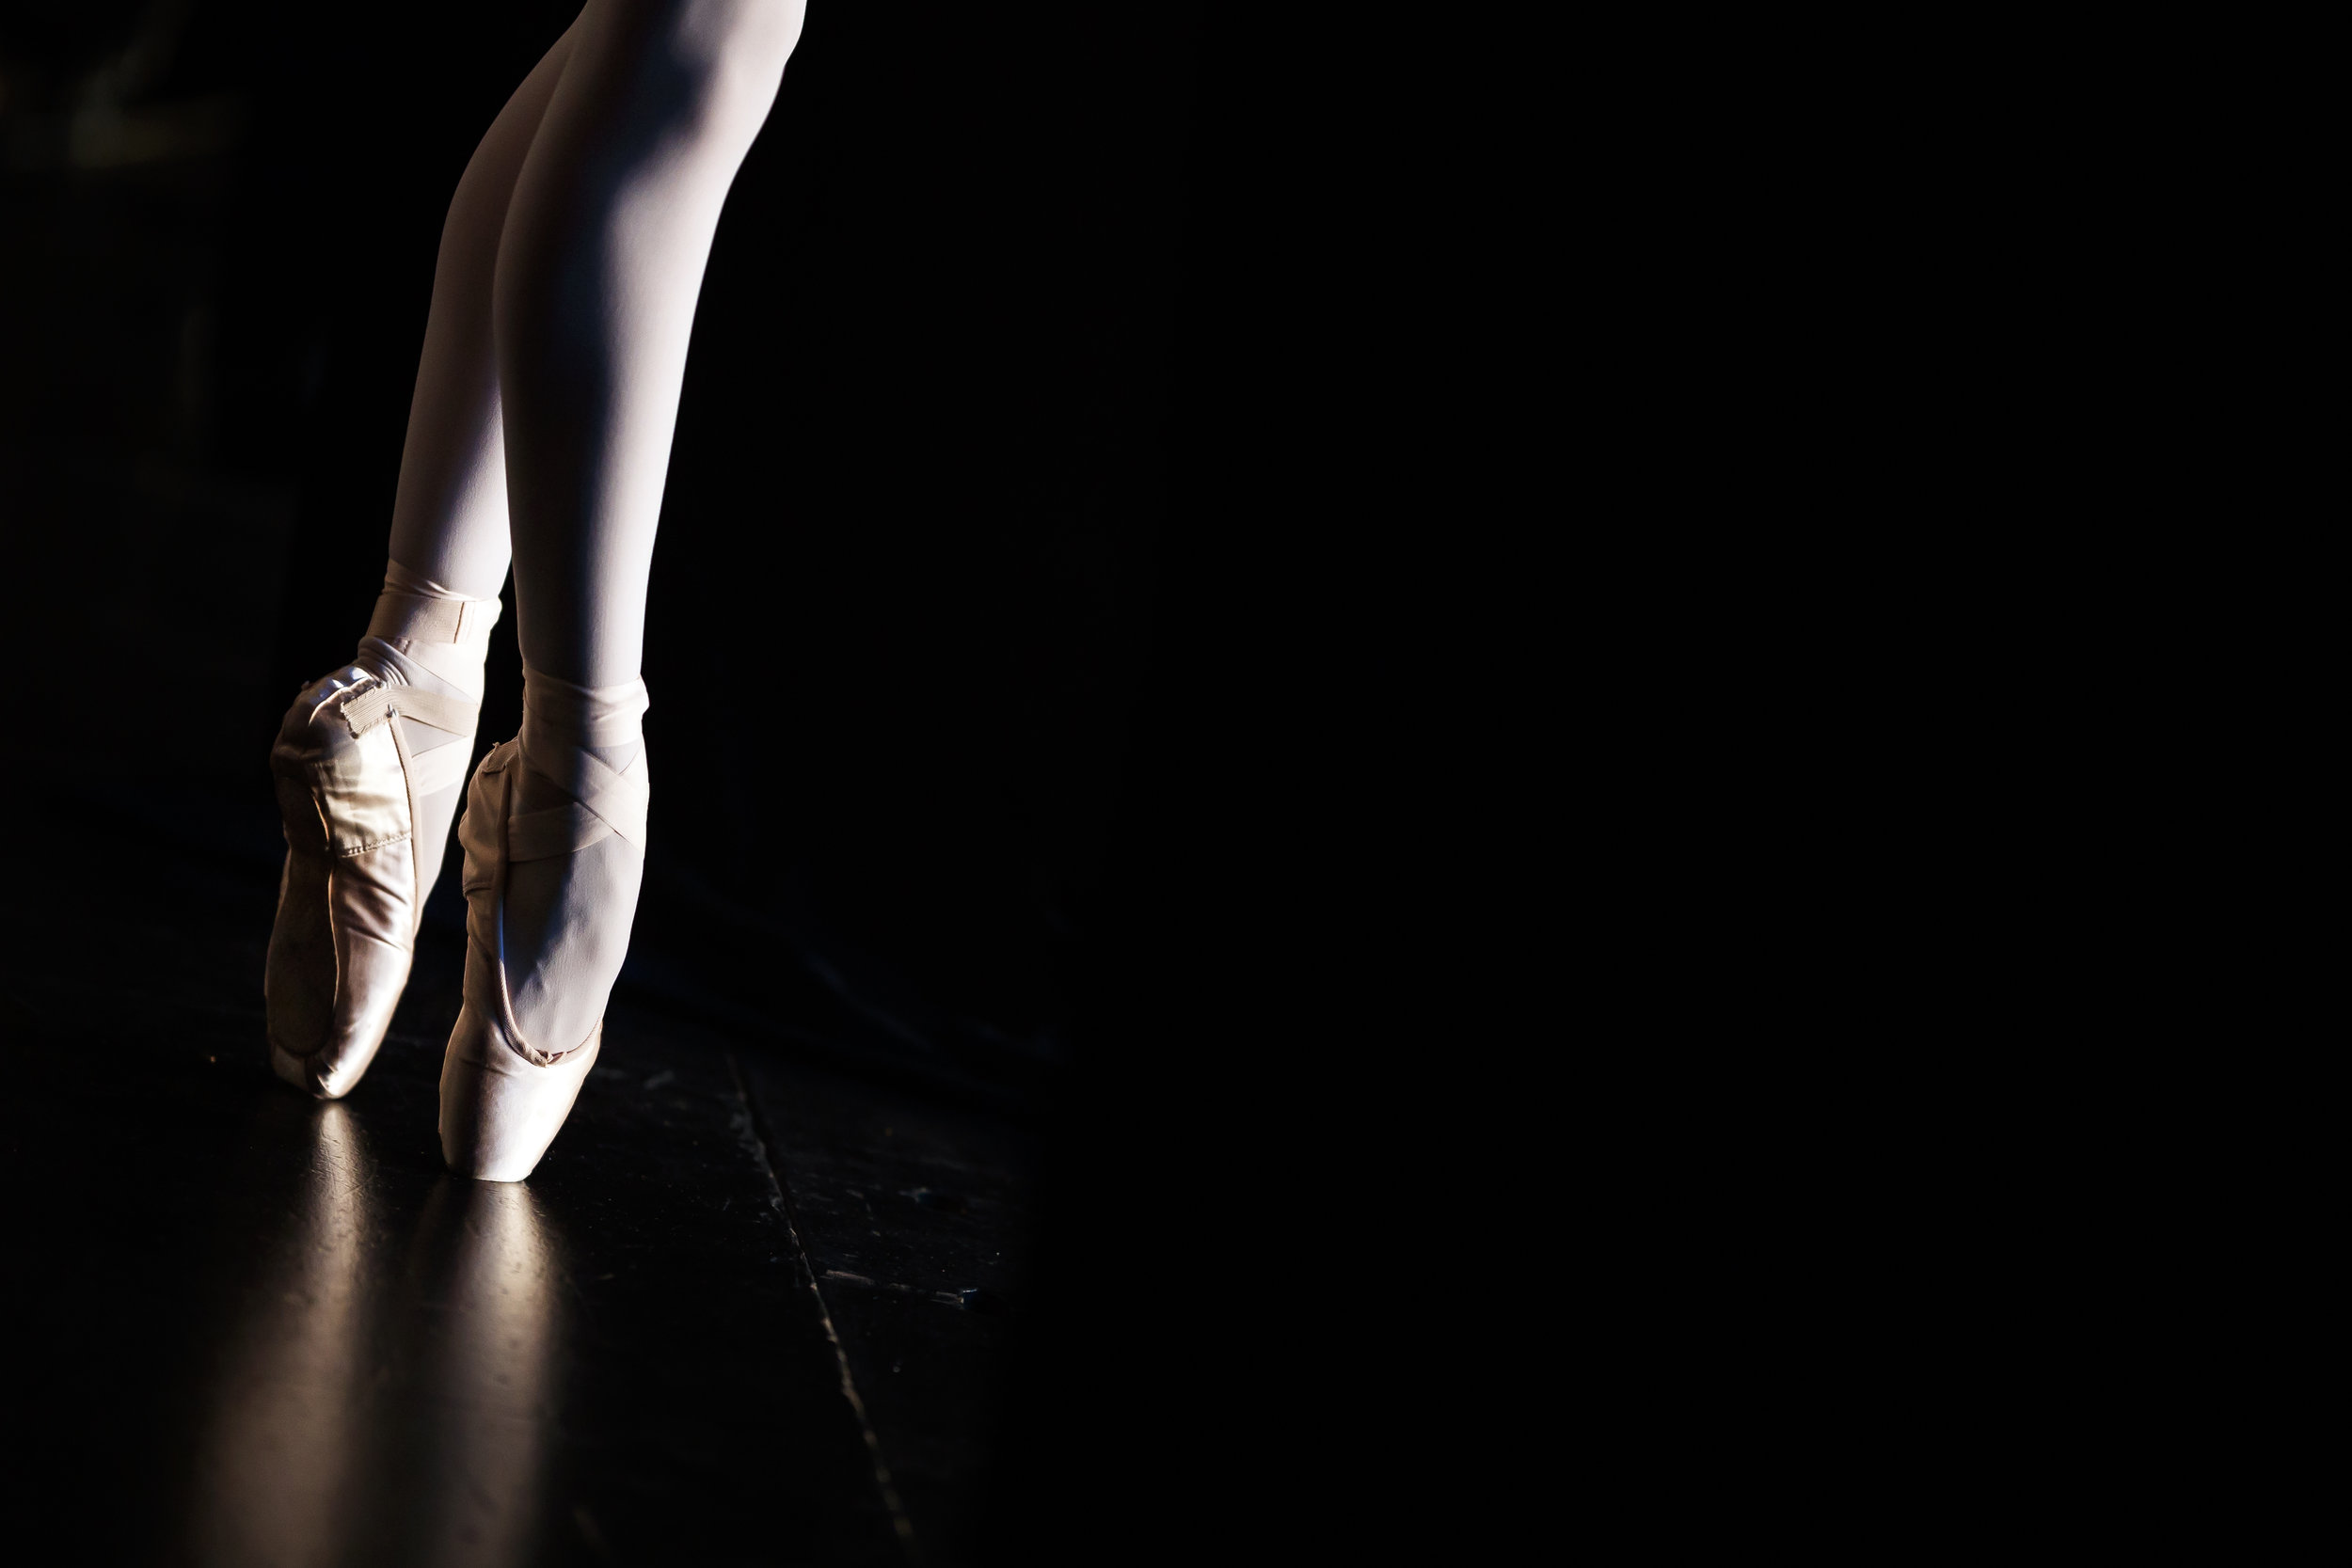 The pointe shoes of a dancer are pictured during the first day of the 47th Prix de Lausanne in Lausanne, Switzerland, Monday, February 4, 2019. Launched in 1973, the Prix de Lausanne is an international dance competition for young dancers aged 15 to 18. Closing the six-day event, scholarships granting free tuition in a world-renowned dance school or dance company will be award to the best dancers out of 74 participants this year. (KEYSTONE/Valentin Flauraud)